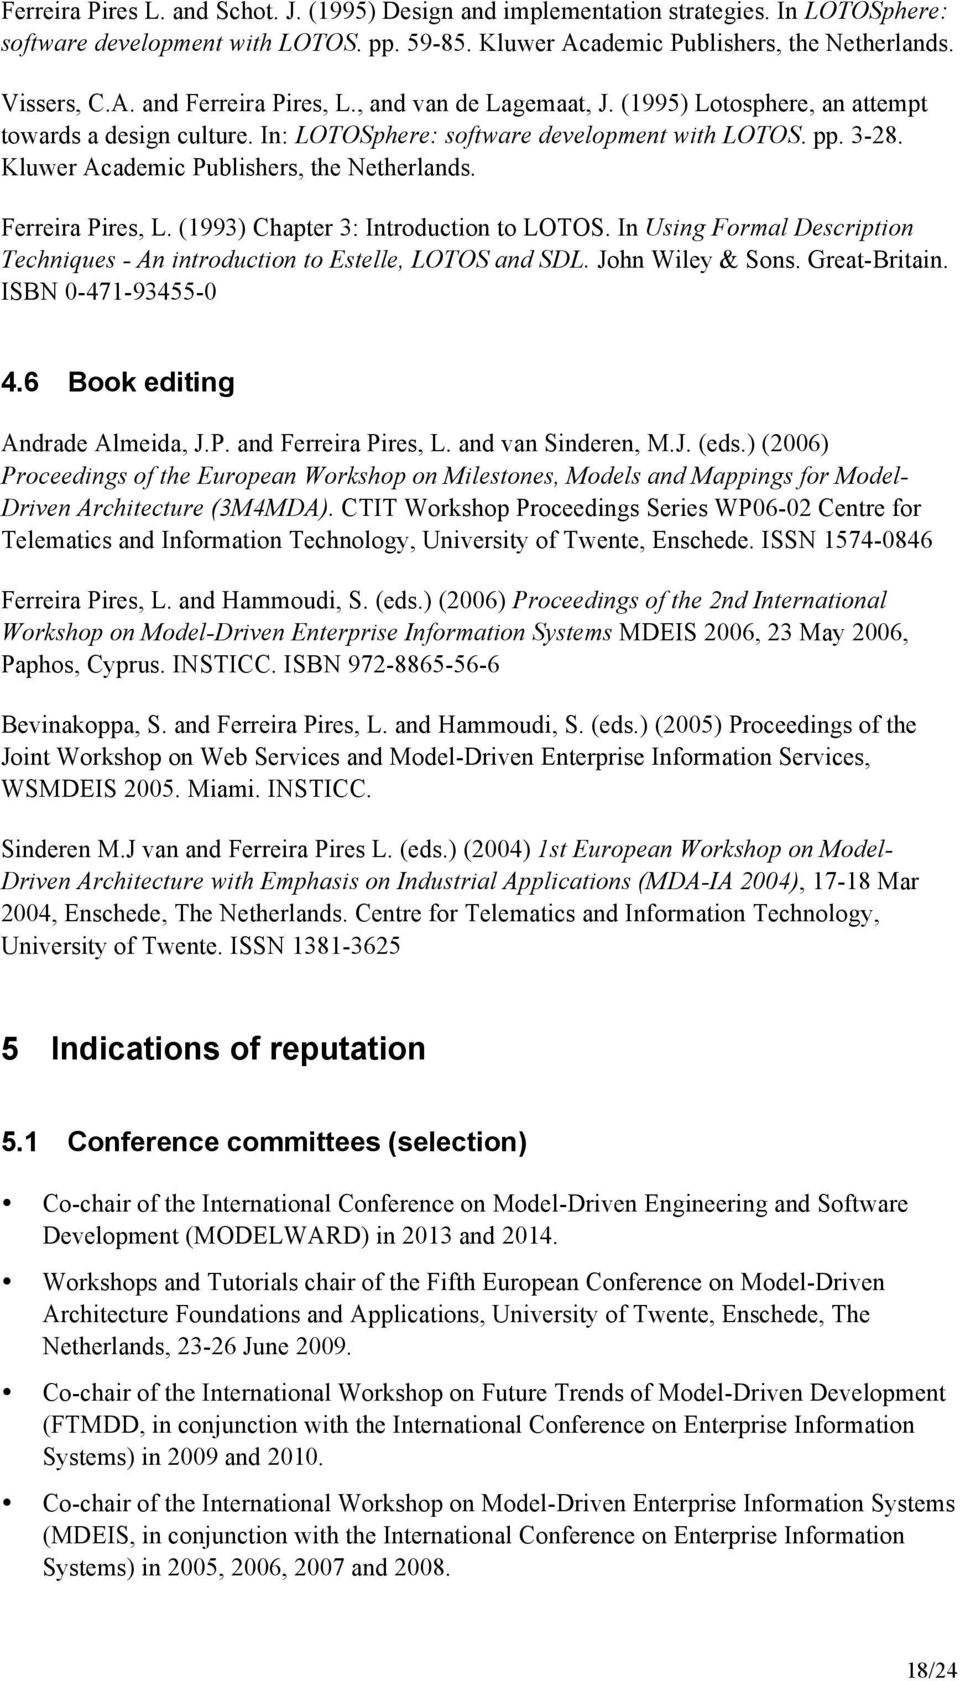 Ferreira Pires, L. (1993) Chapter 3: Introduction to LOTOS. In Using Formal Description Techniques - An introduction to Estelle, LOTOS and SDL. John Wiley & Sons. Great-Britain. ISBN 0-471-93455-0 4.